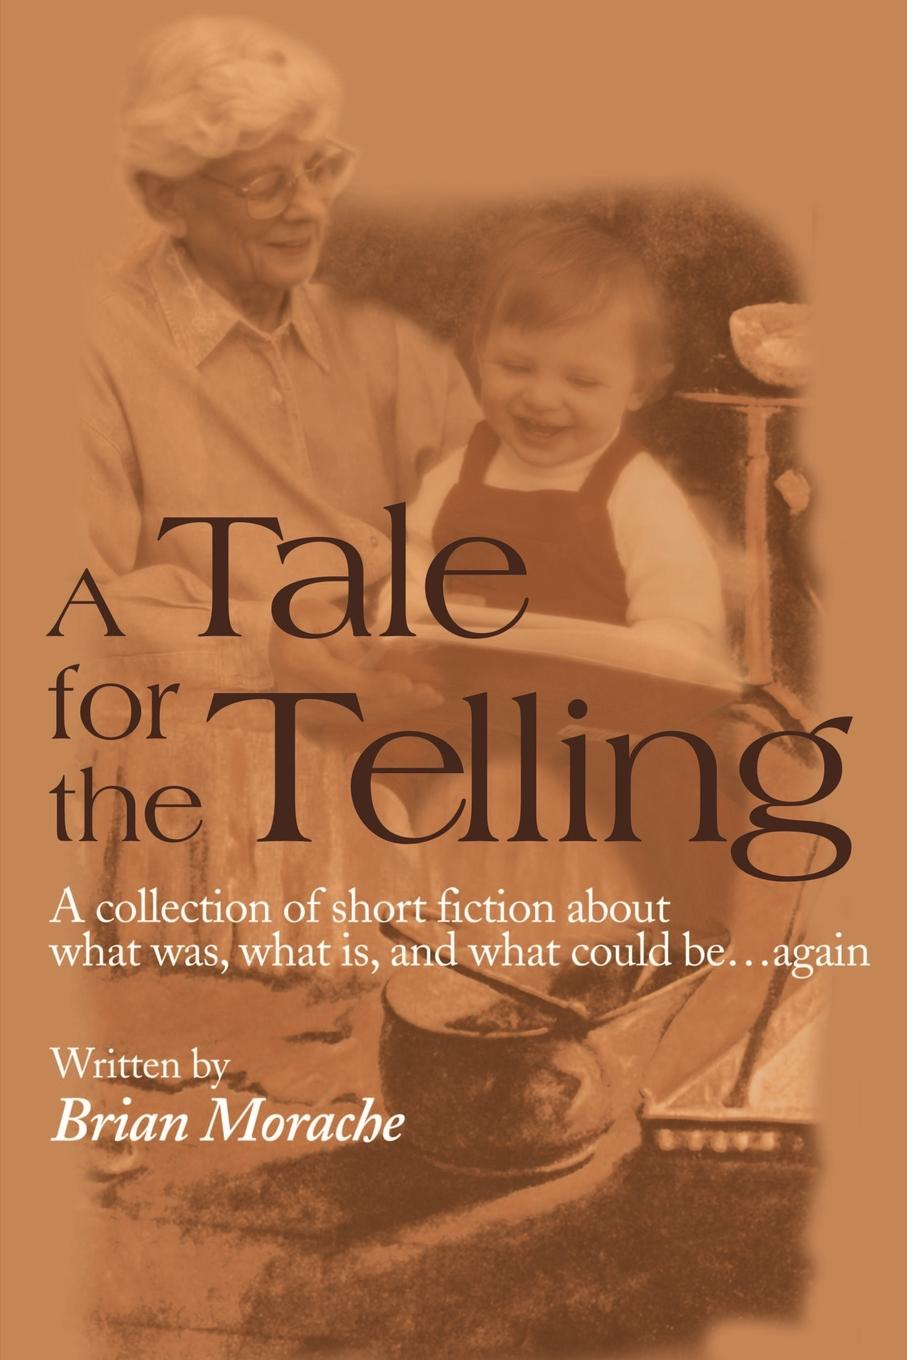 A Tale for the Telling. A Collection of Short Fiction about What Was, What Is, and What Could Be...Again. Brian Morache